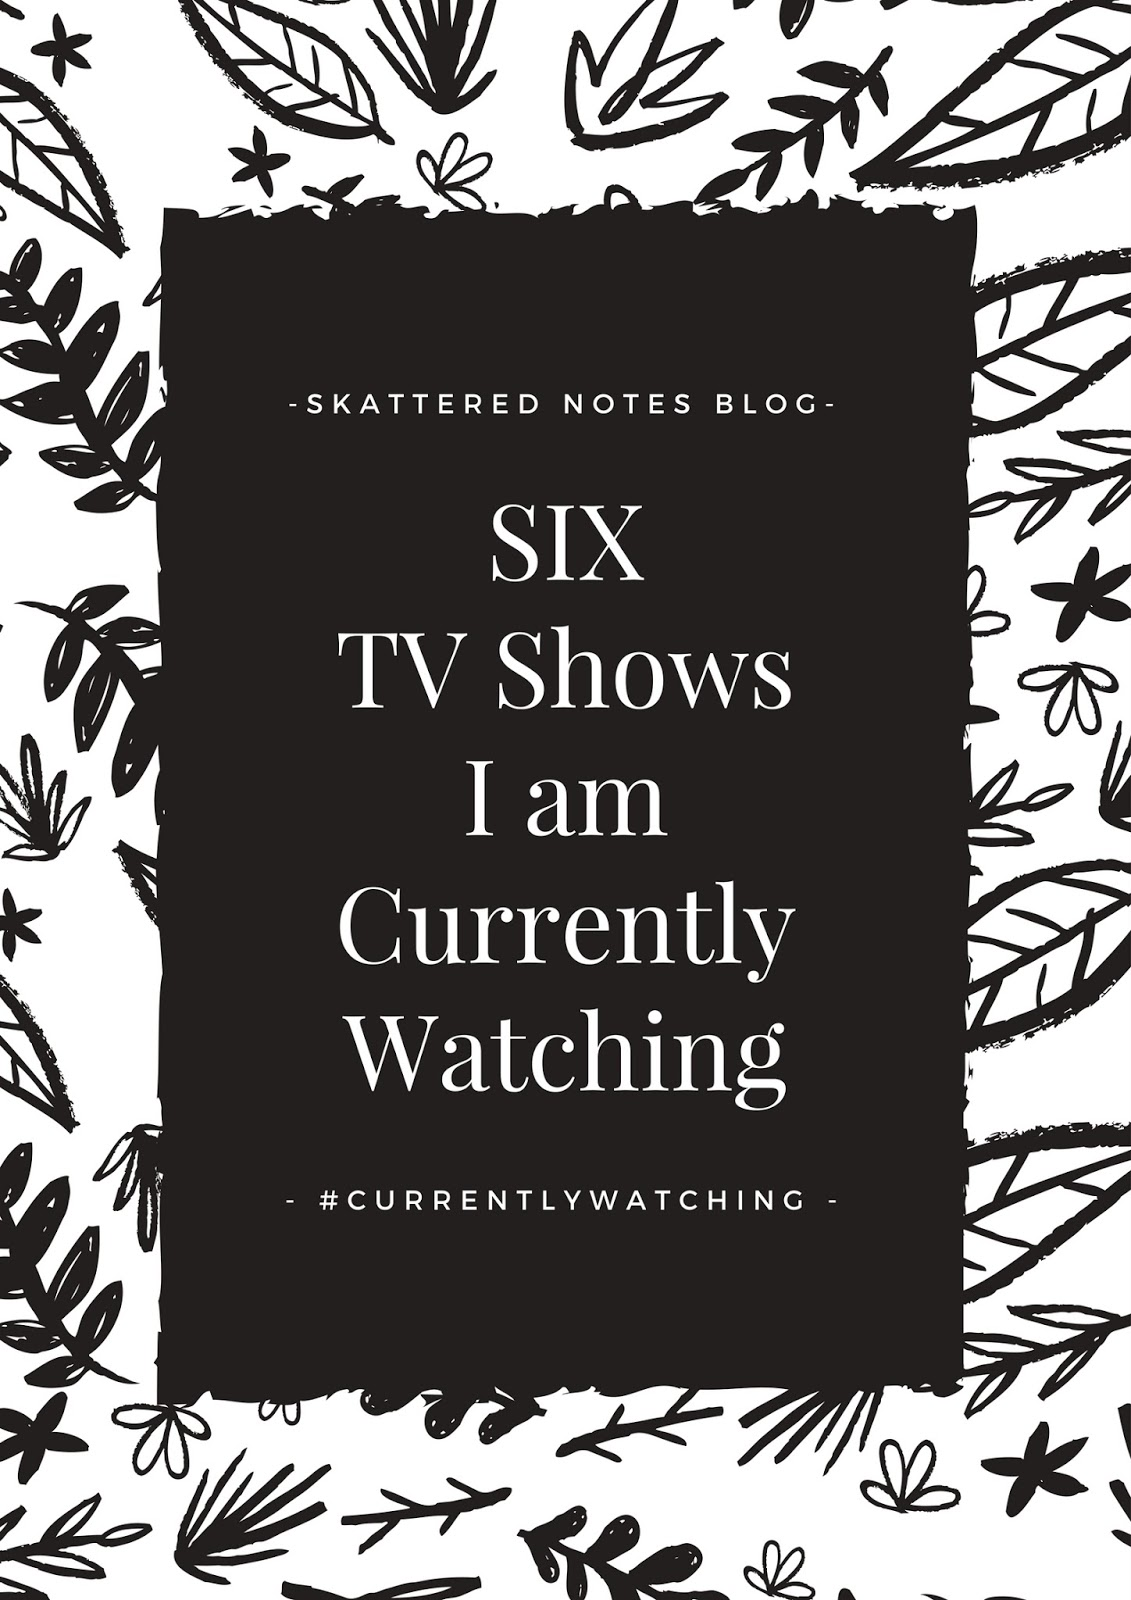 Six TV Shows I am Currently Watching